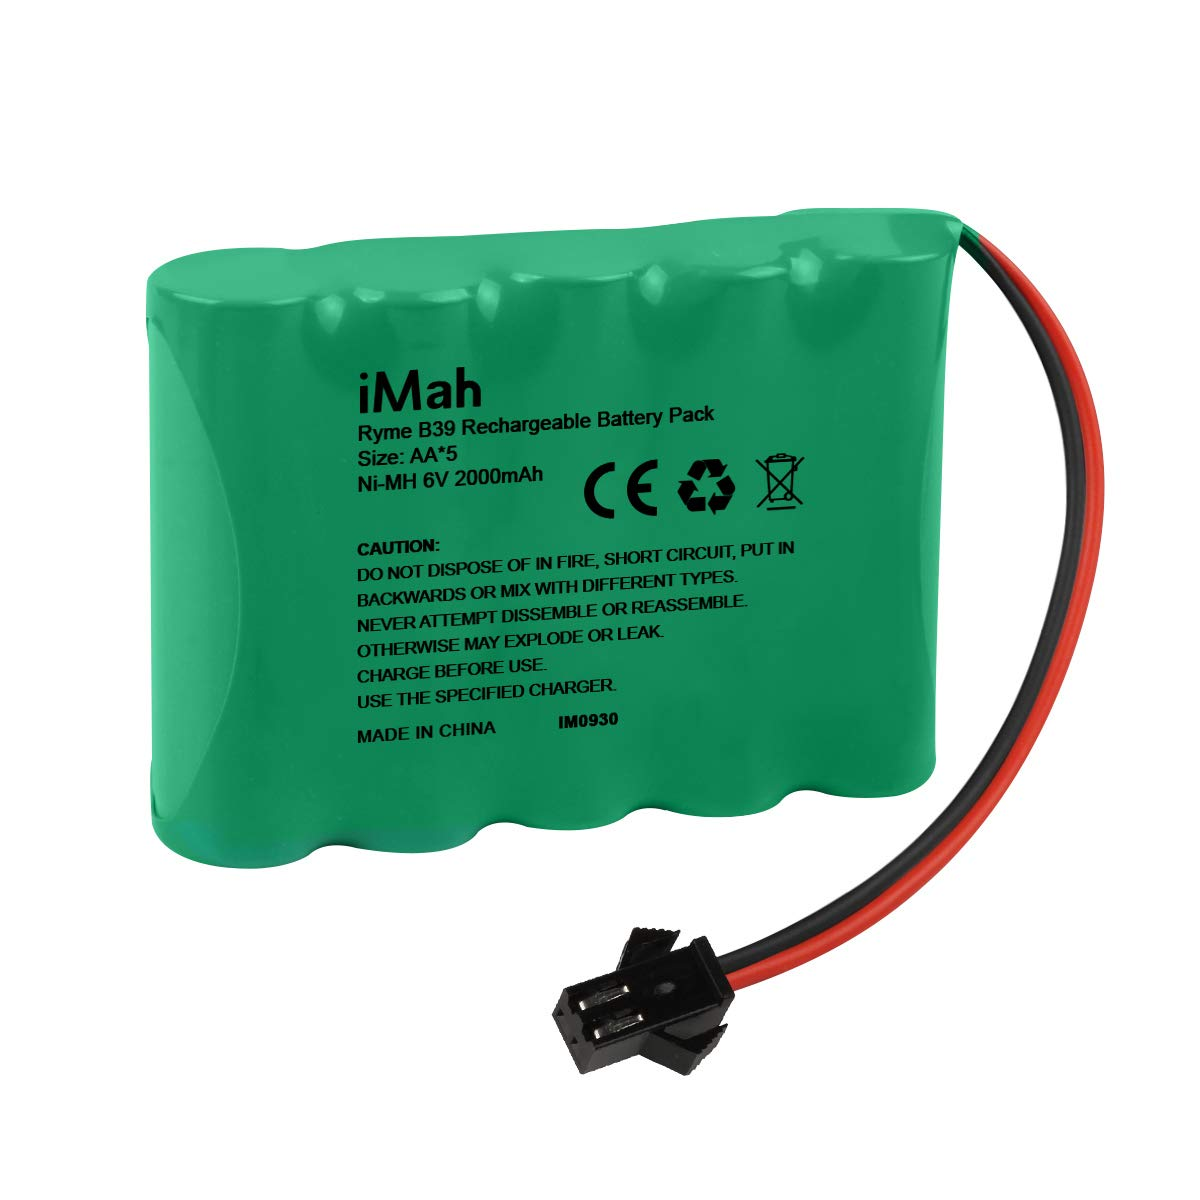 iMah 6V AA Battery Pack 2000mAh High Capacity Ni-MH Rechargeable with SM-2P Plug for 1/14 1/18 1/20 High Speed Radio Remote Control Car Off Road RC Truck Buggy